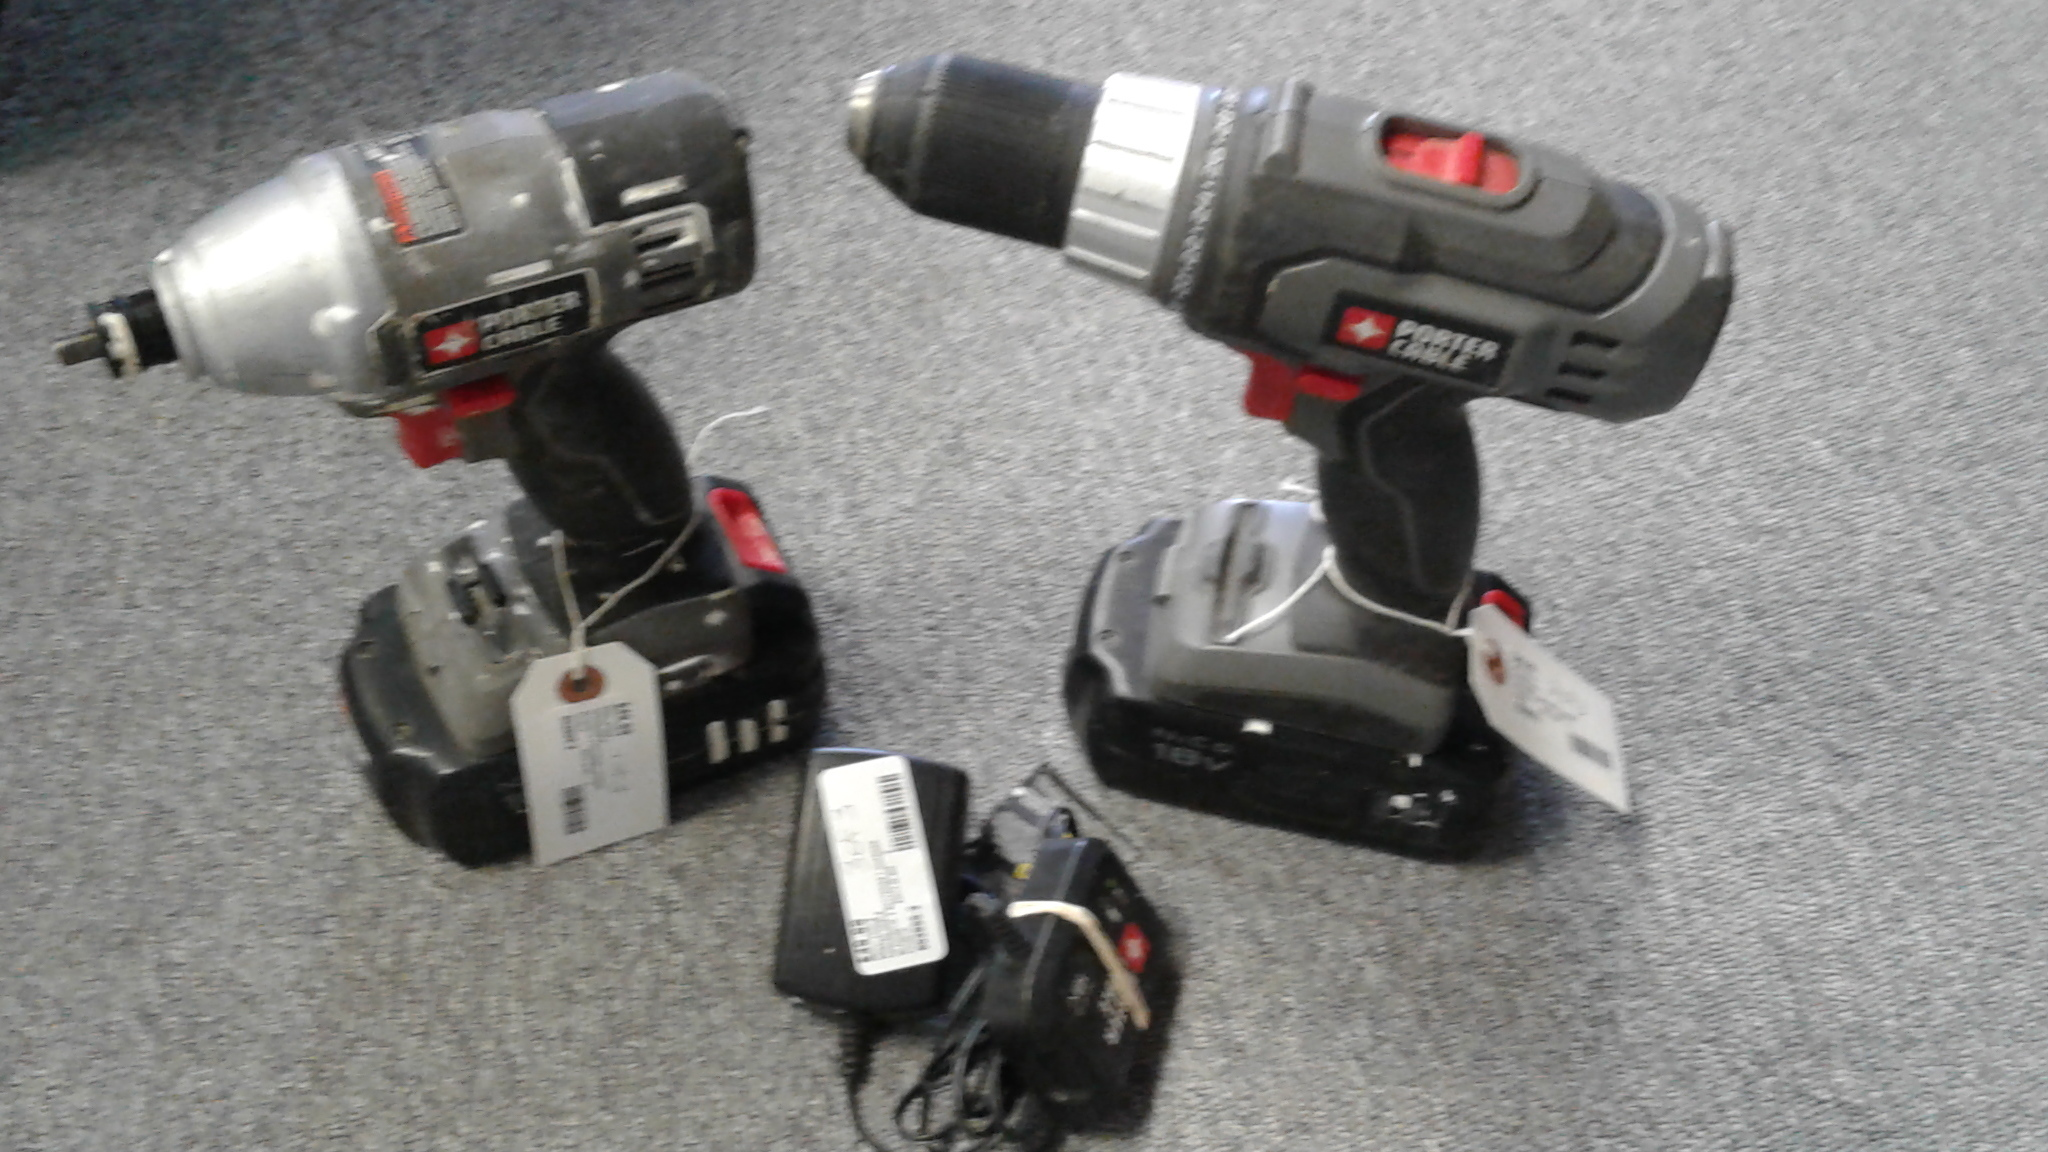 PORTER CABLE - PC1801D & PC1801ID - IMPACT & DRILL DRIVER